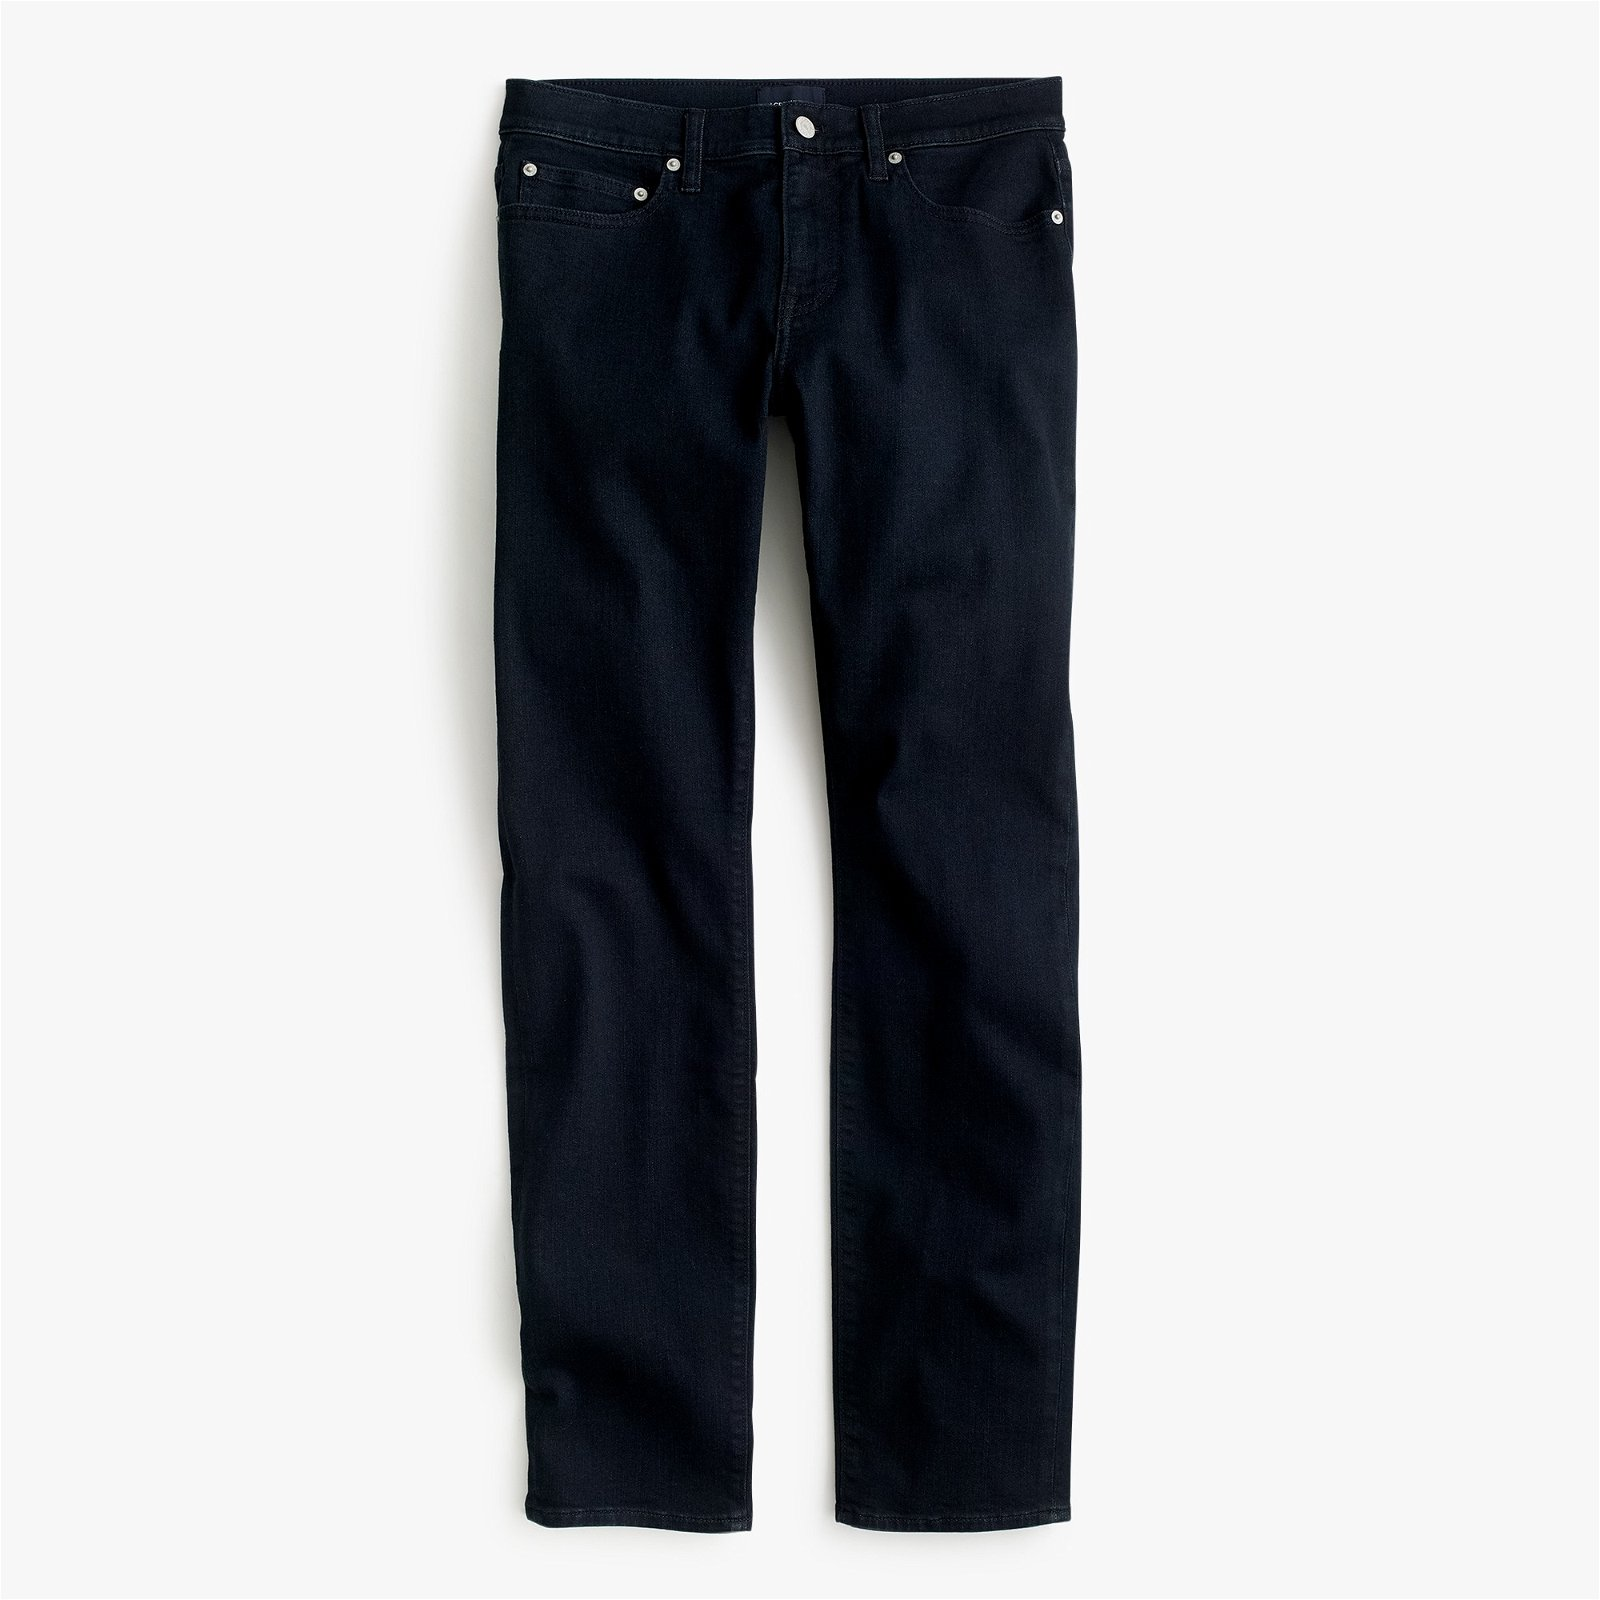 484 Slim-fit stretch jean in deep lake wash